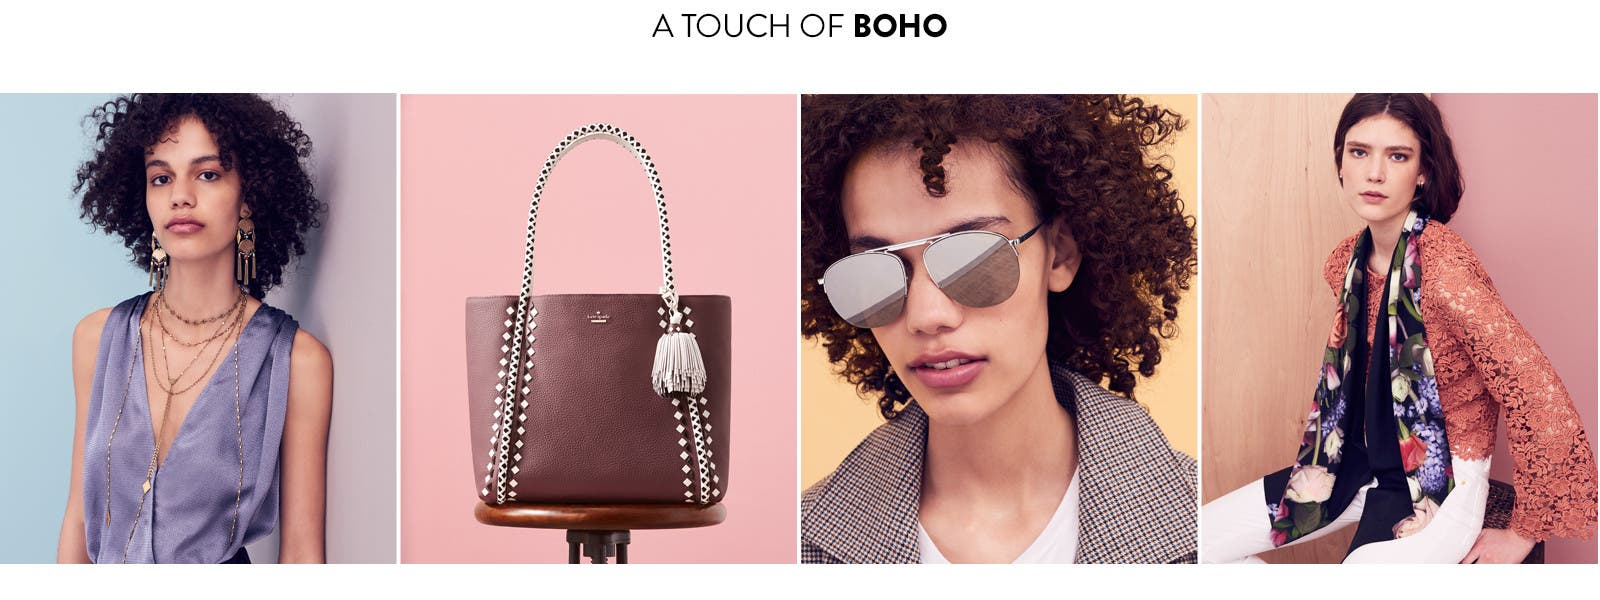 A touch of boho.